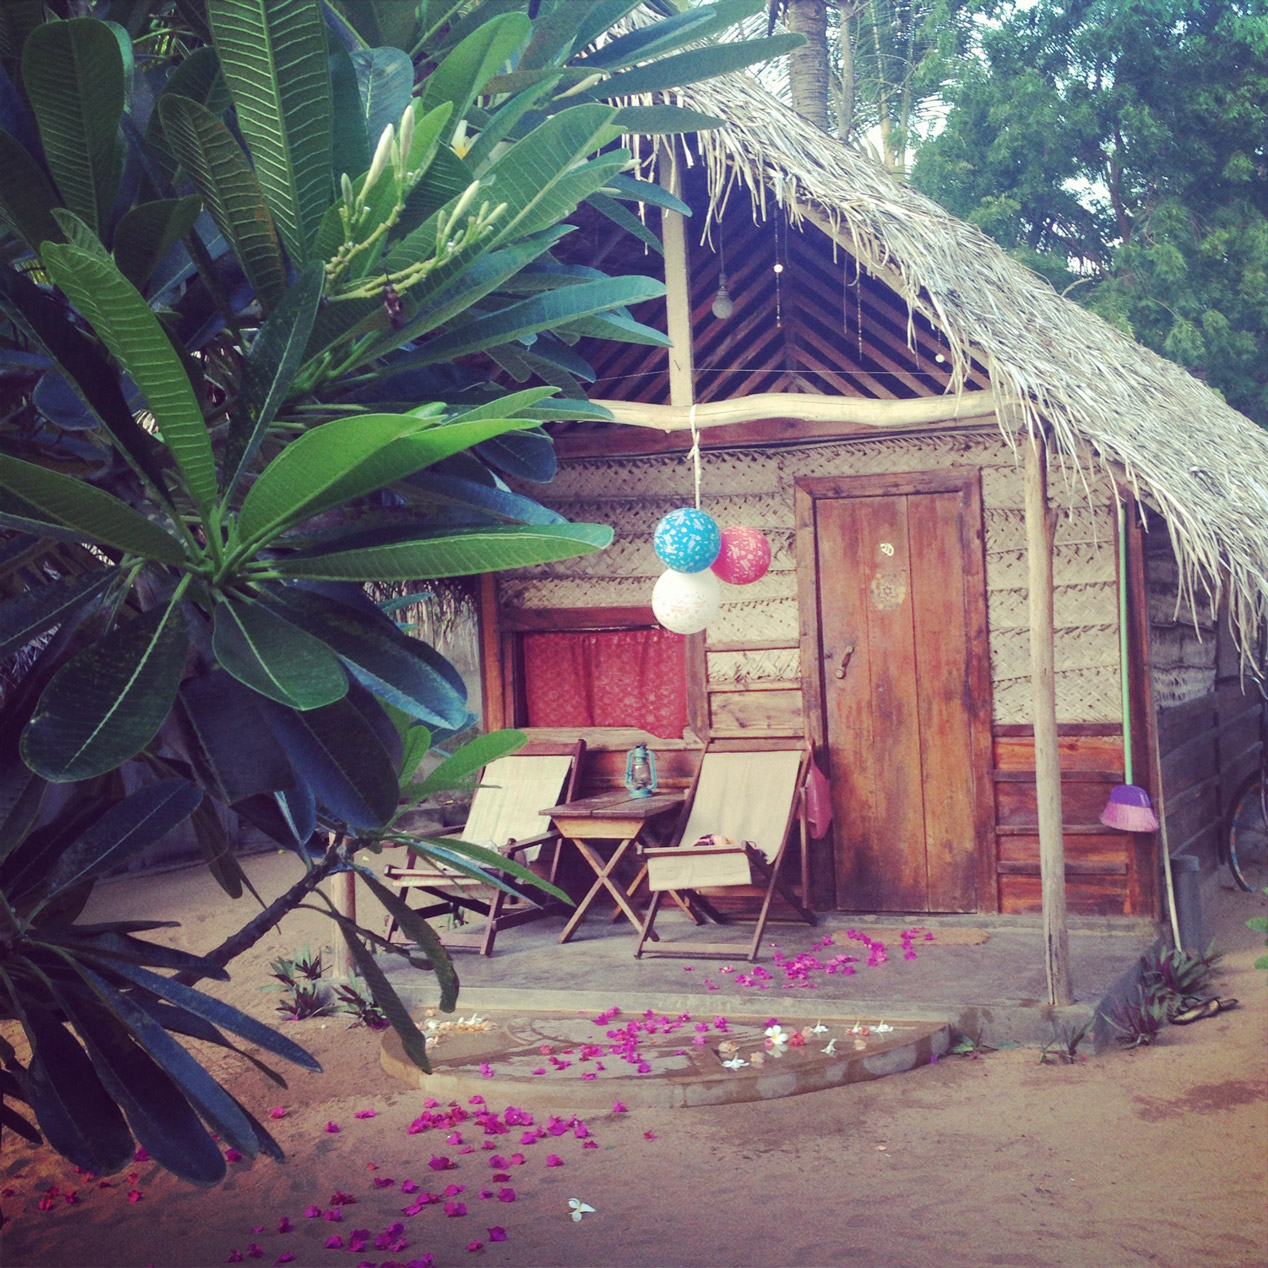 Cabana decked out for my birthday by the lovely people of The Folly Arugam Bay